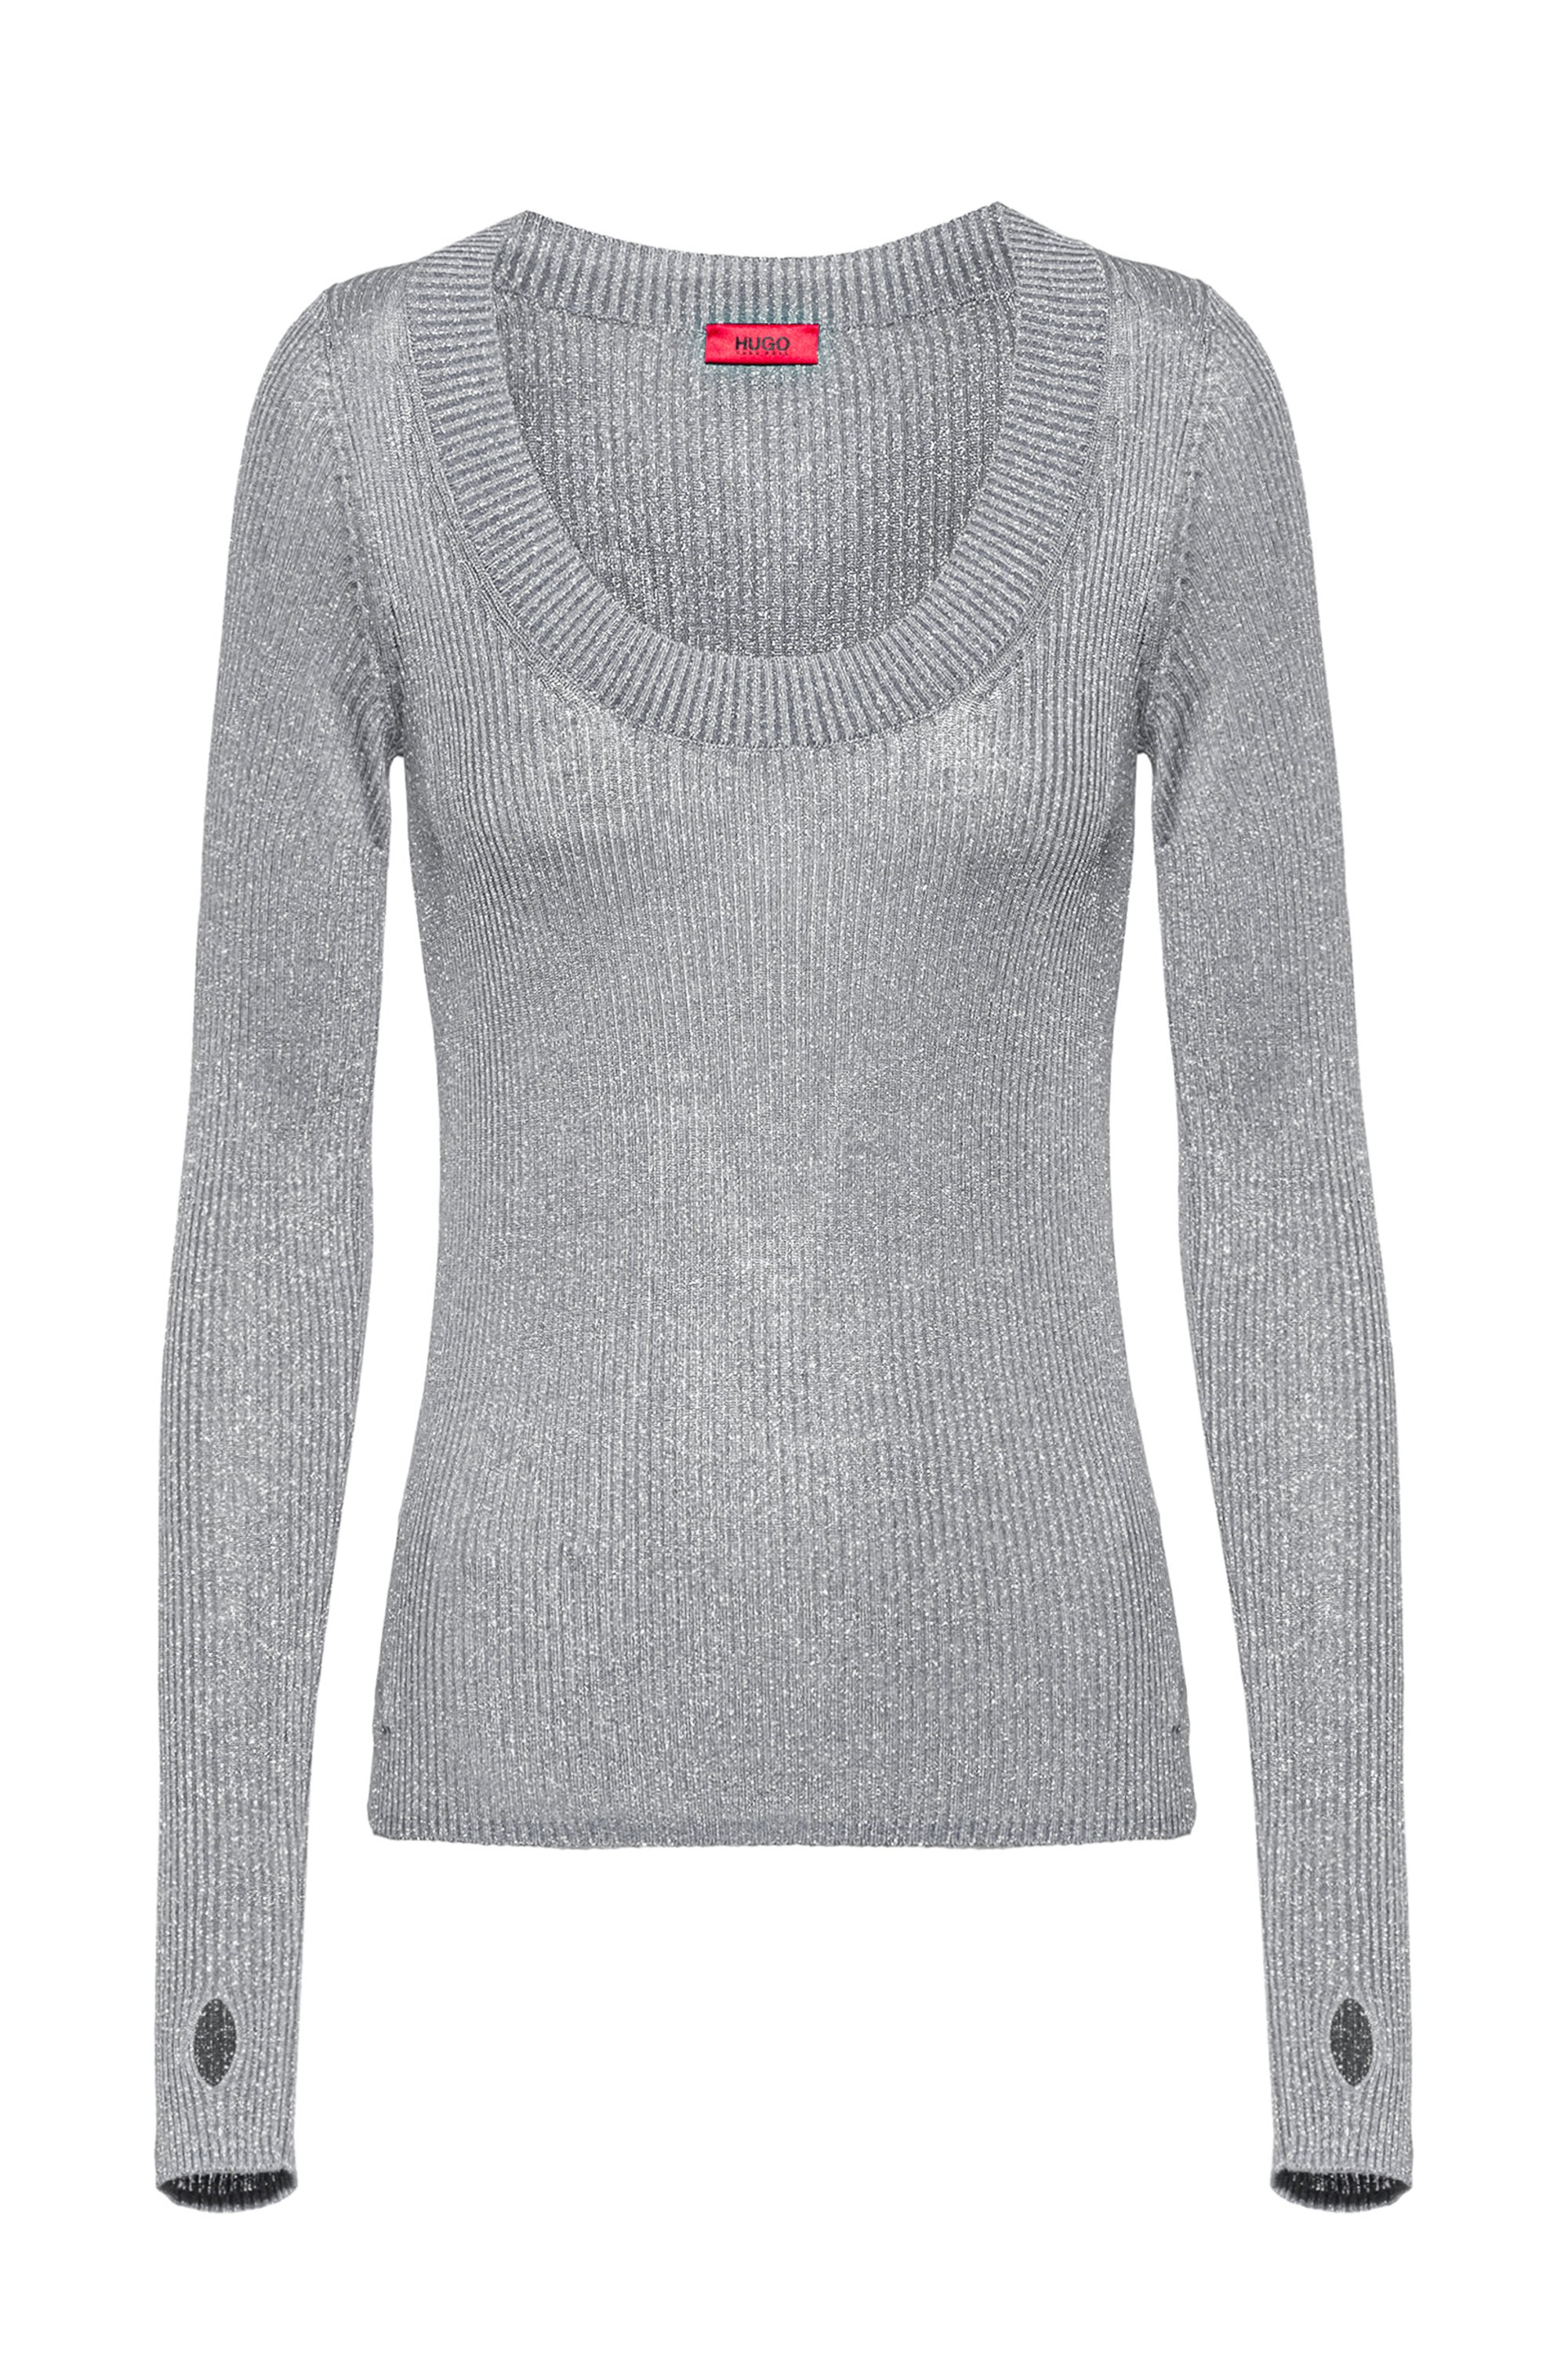 Glittery-effect sweater with thumbholes, Patterned